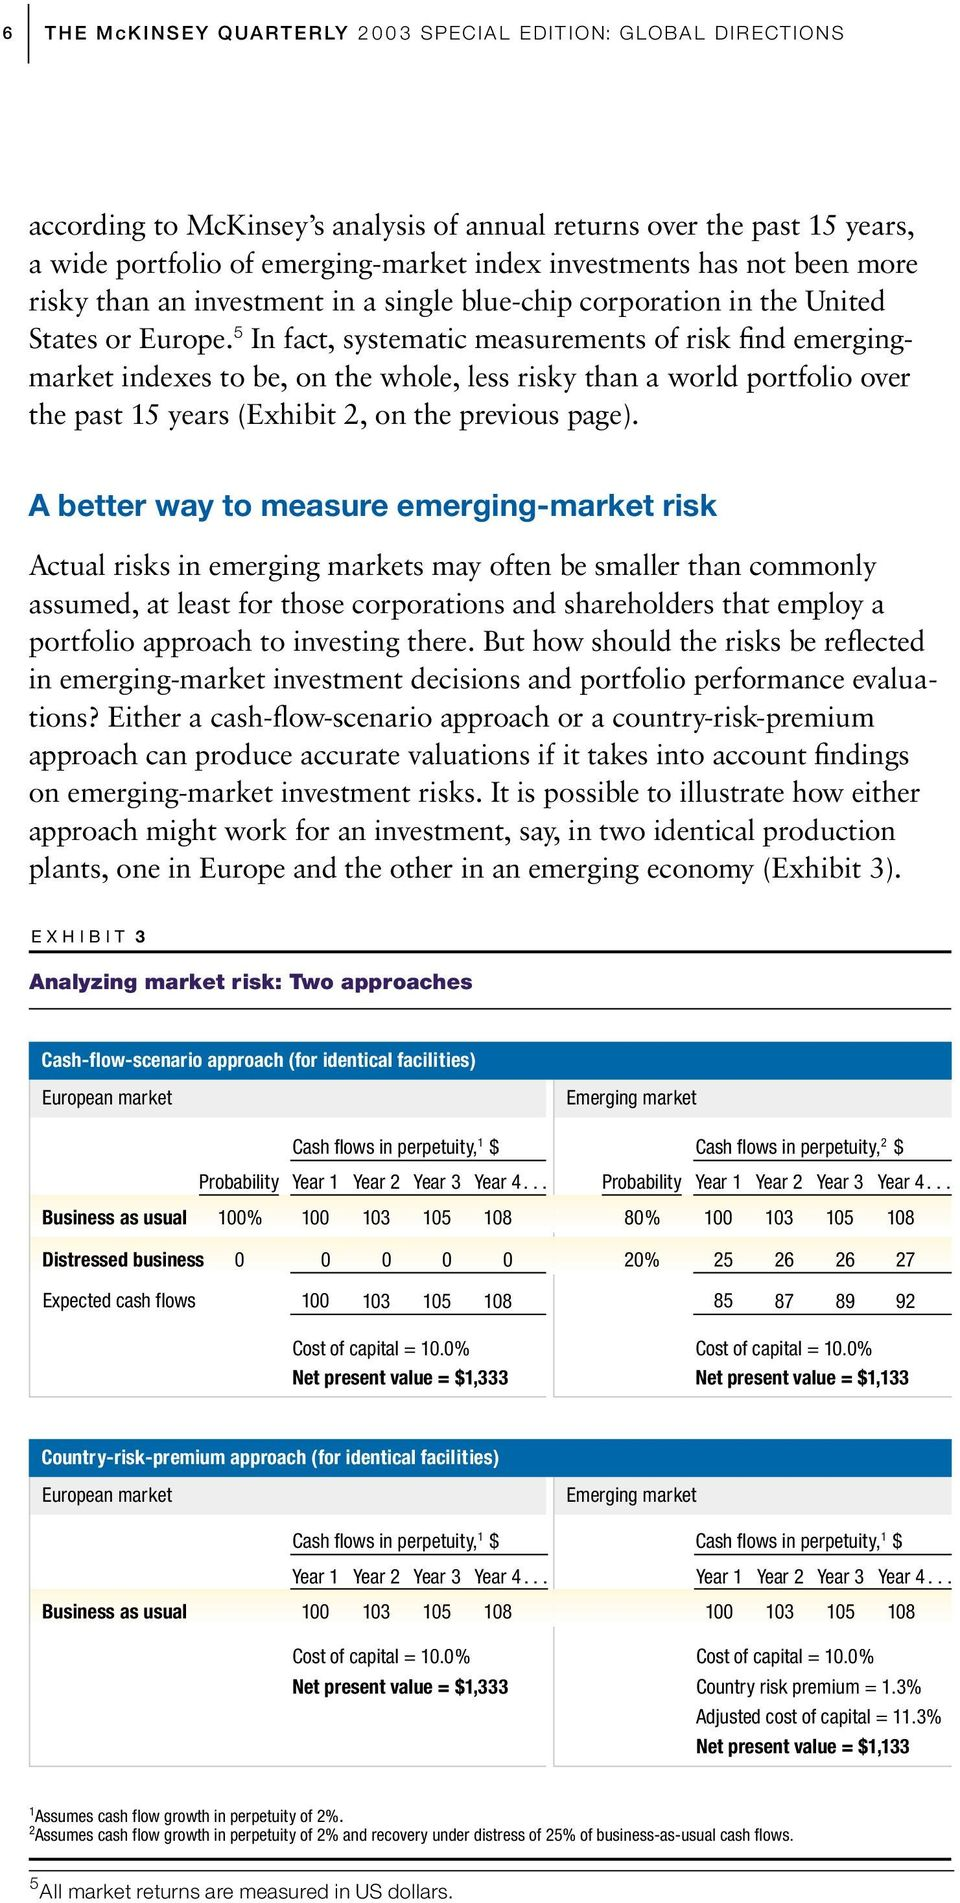 5 In fact, systematic measurements of risk find emergingmarket indexes to be, on the whole, less risky than a world portfolio over the past 15 years (Exhibit 2, on the previous page).